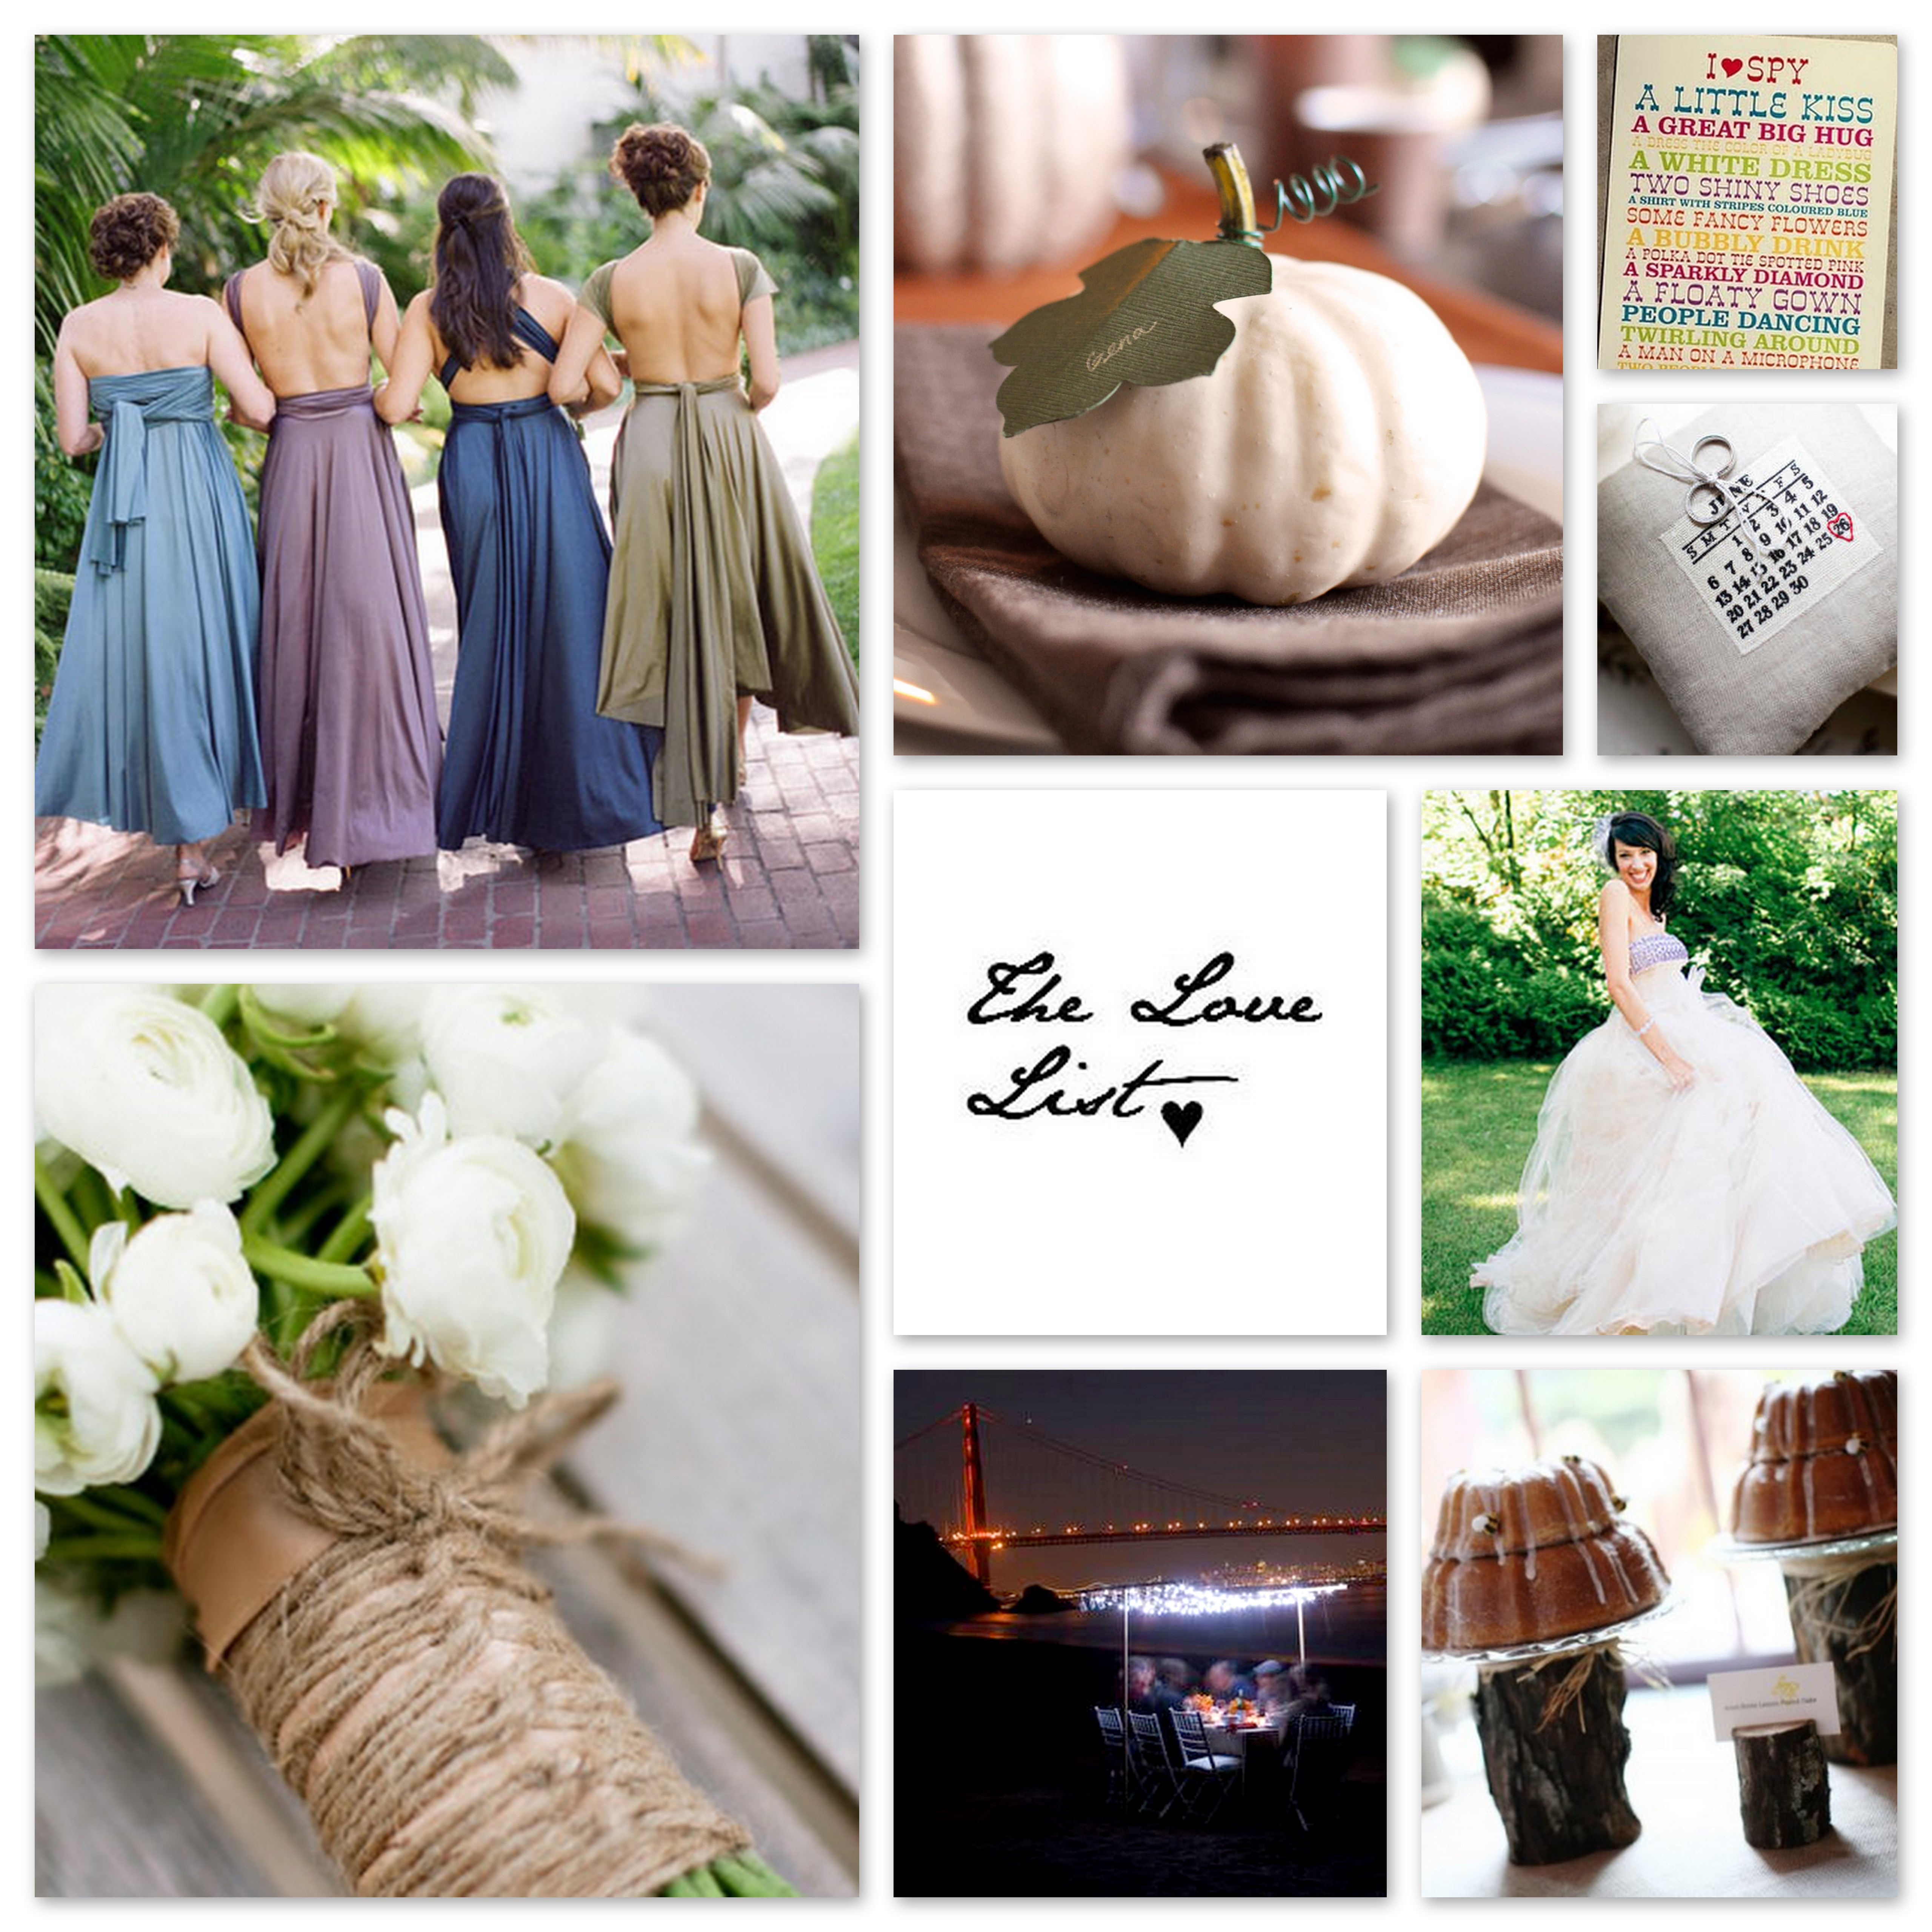 The Love List {1 Oct 2010} | SouthBound Bride